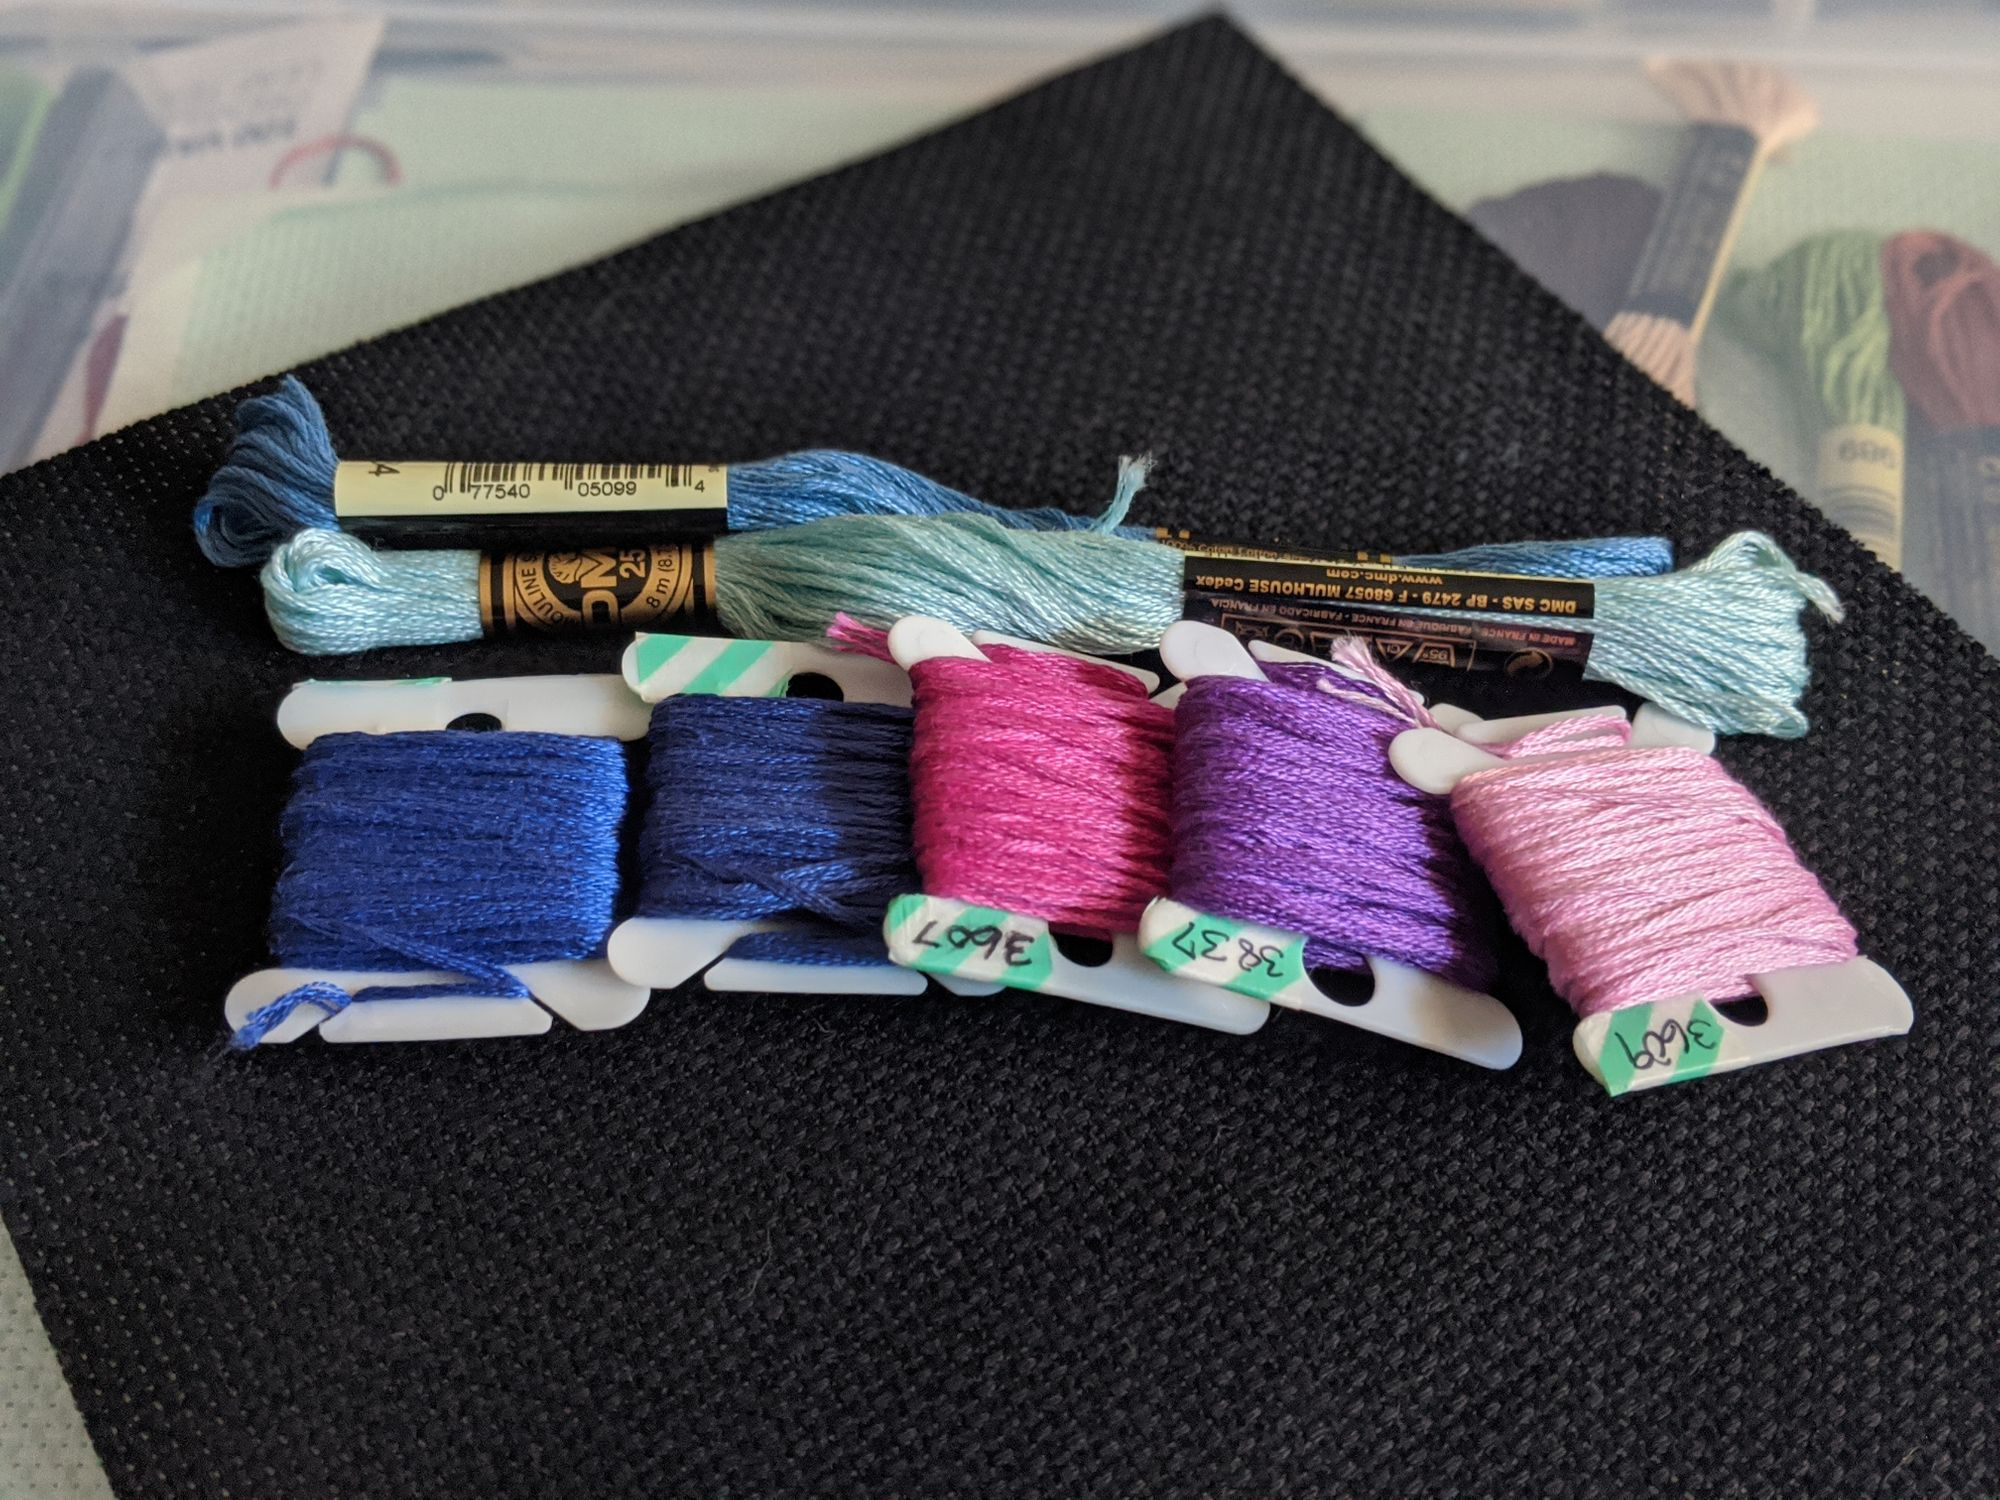 Different colored blue, pink, and purple thread sitting on top of black aida cloth, which is fabric you use for cross stitching